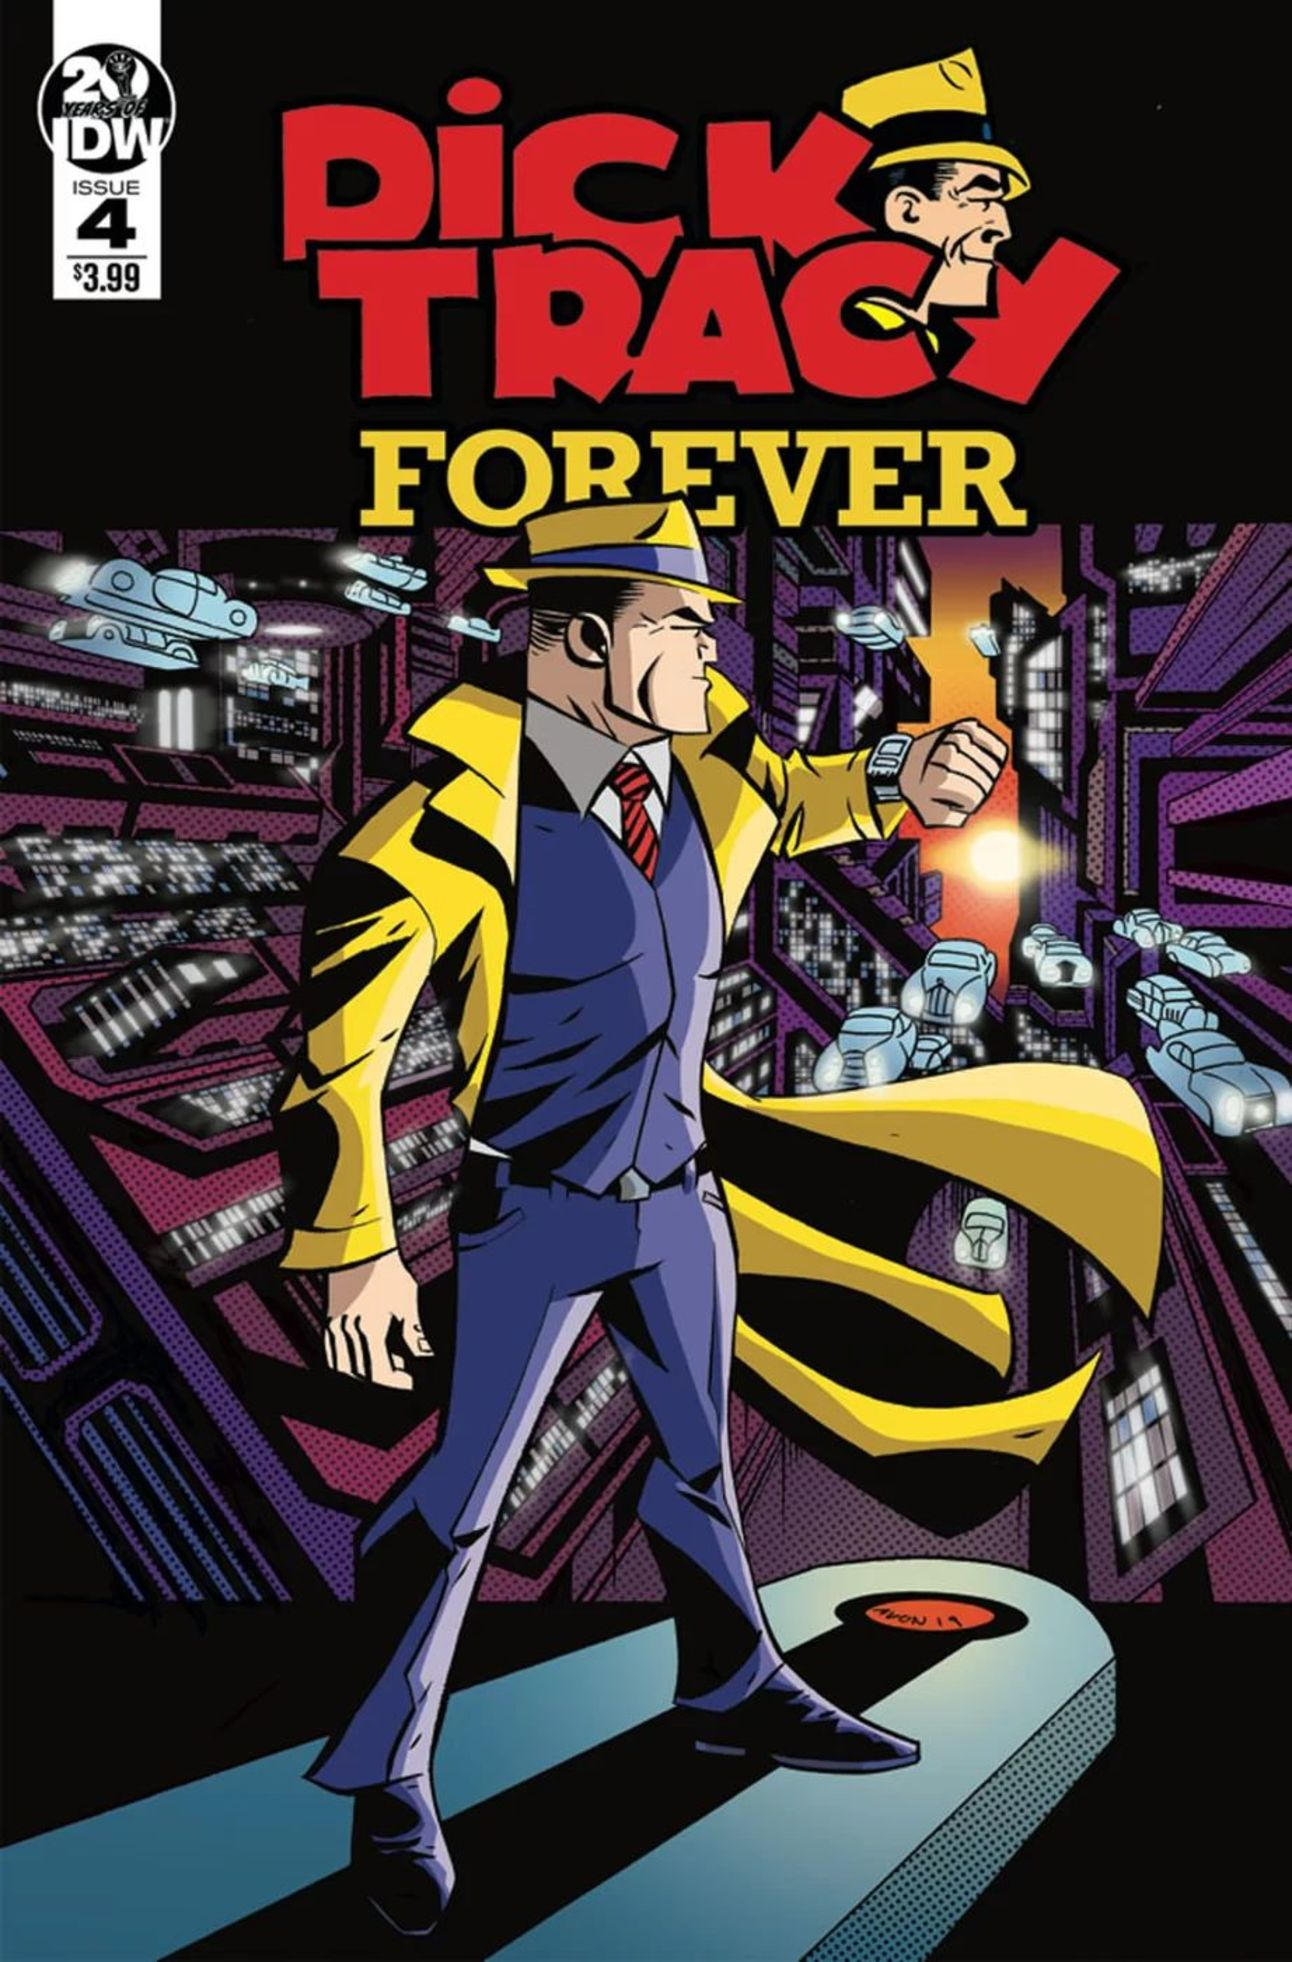 Dick Tracy Forever #4, IDW Publishing